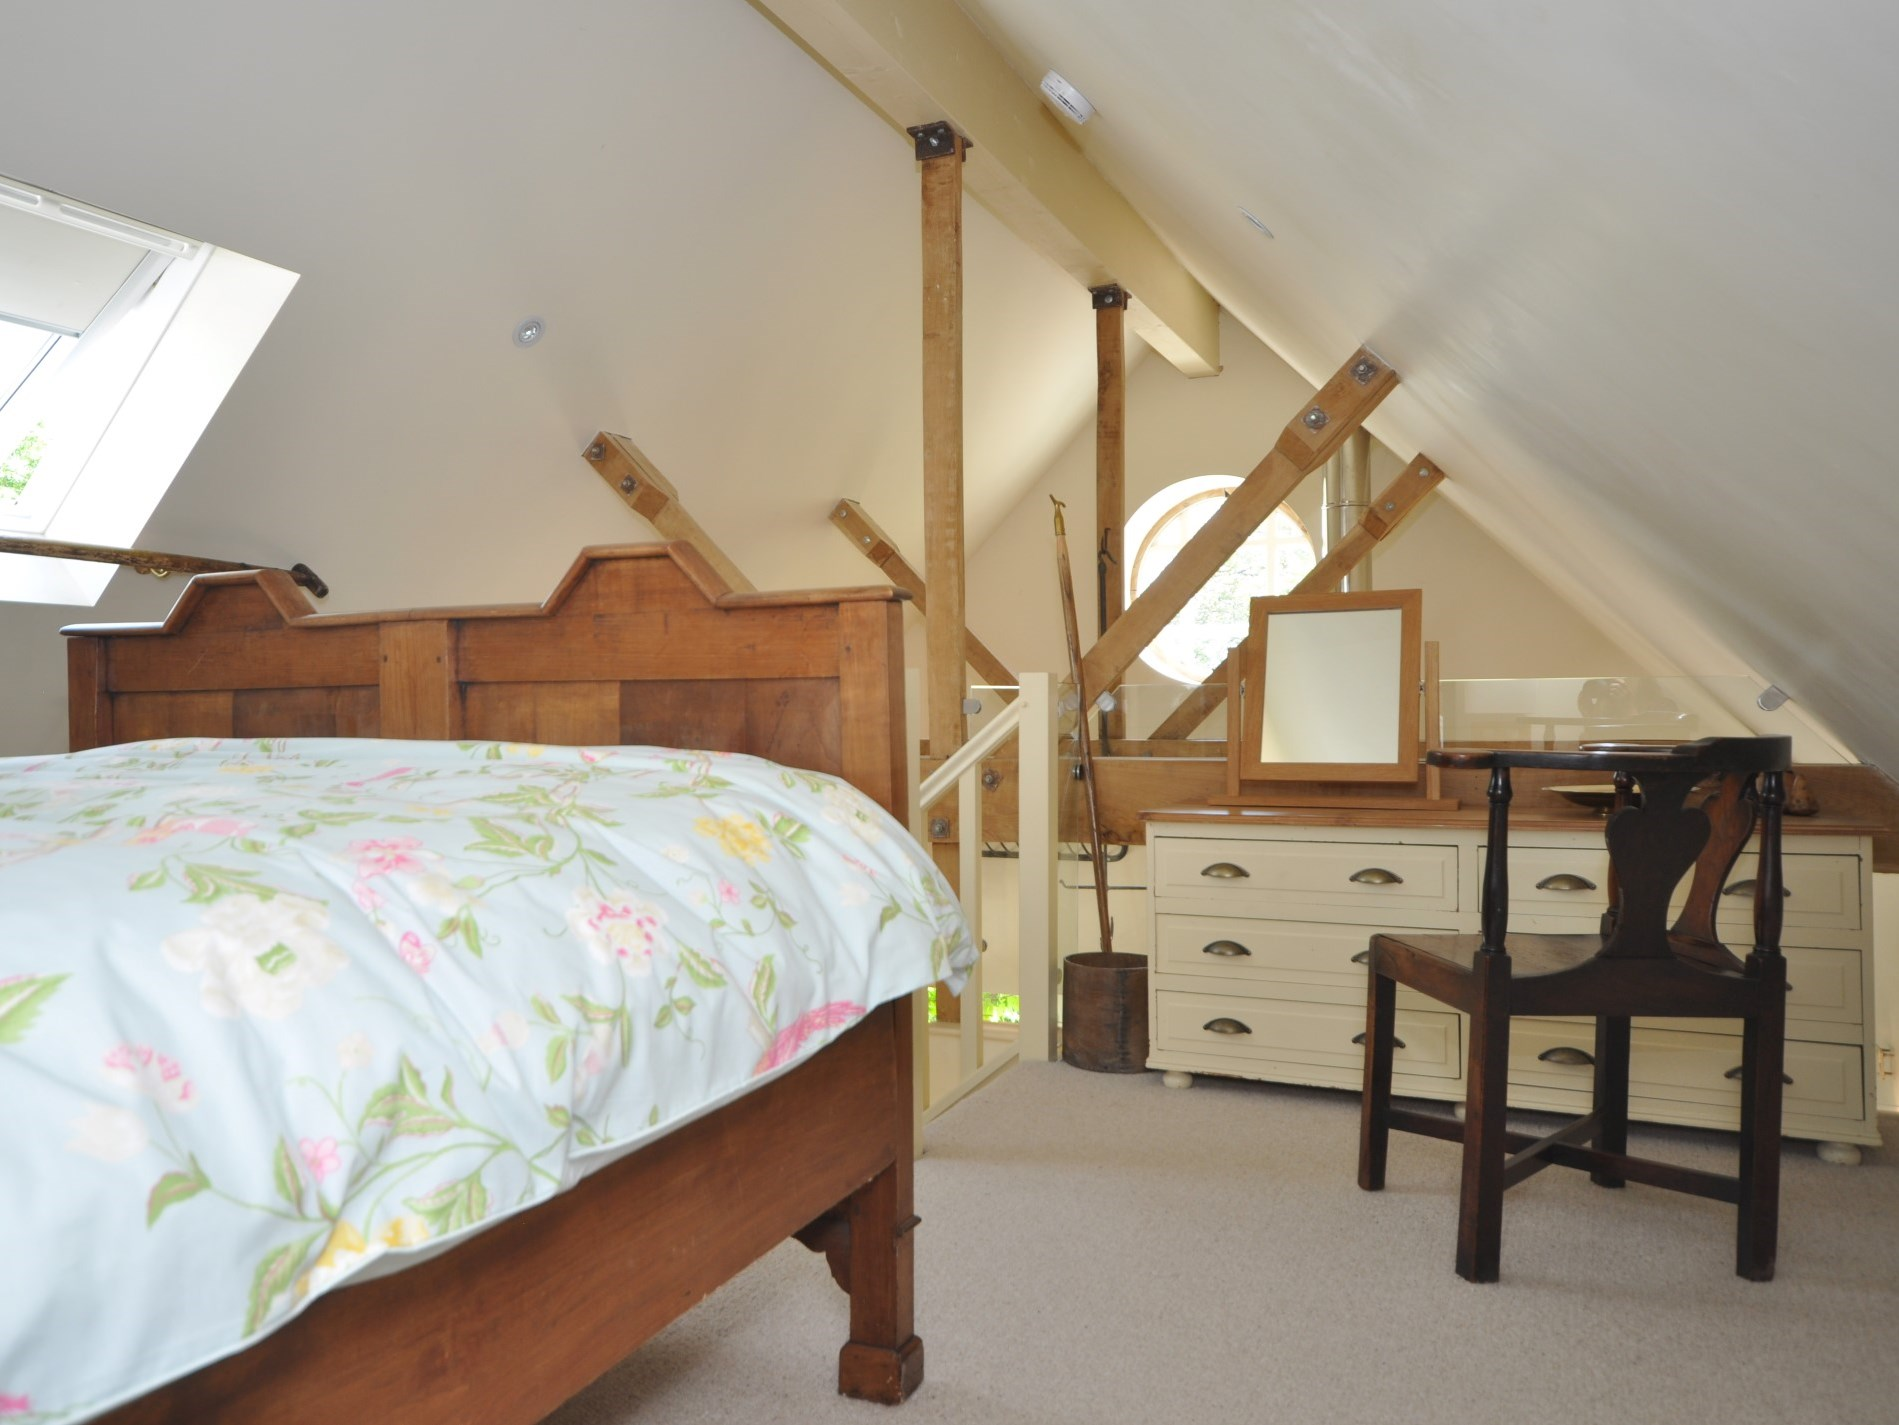 The stunning oak beams forming part of the interior